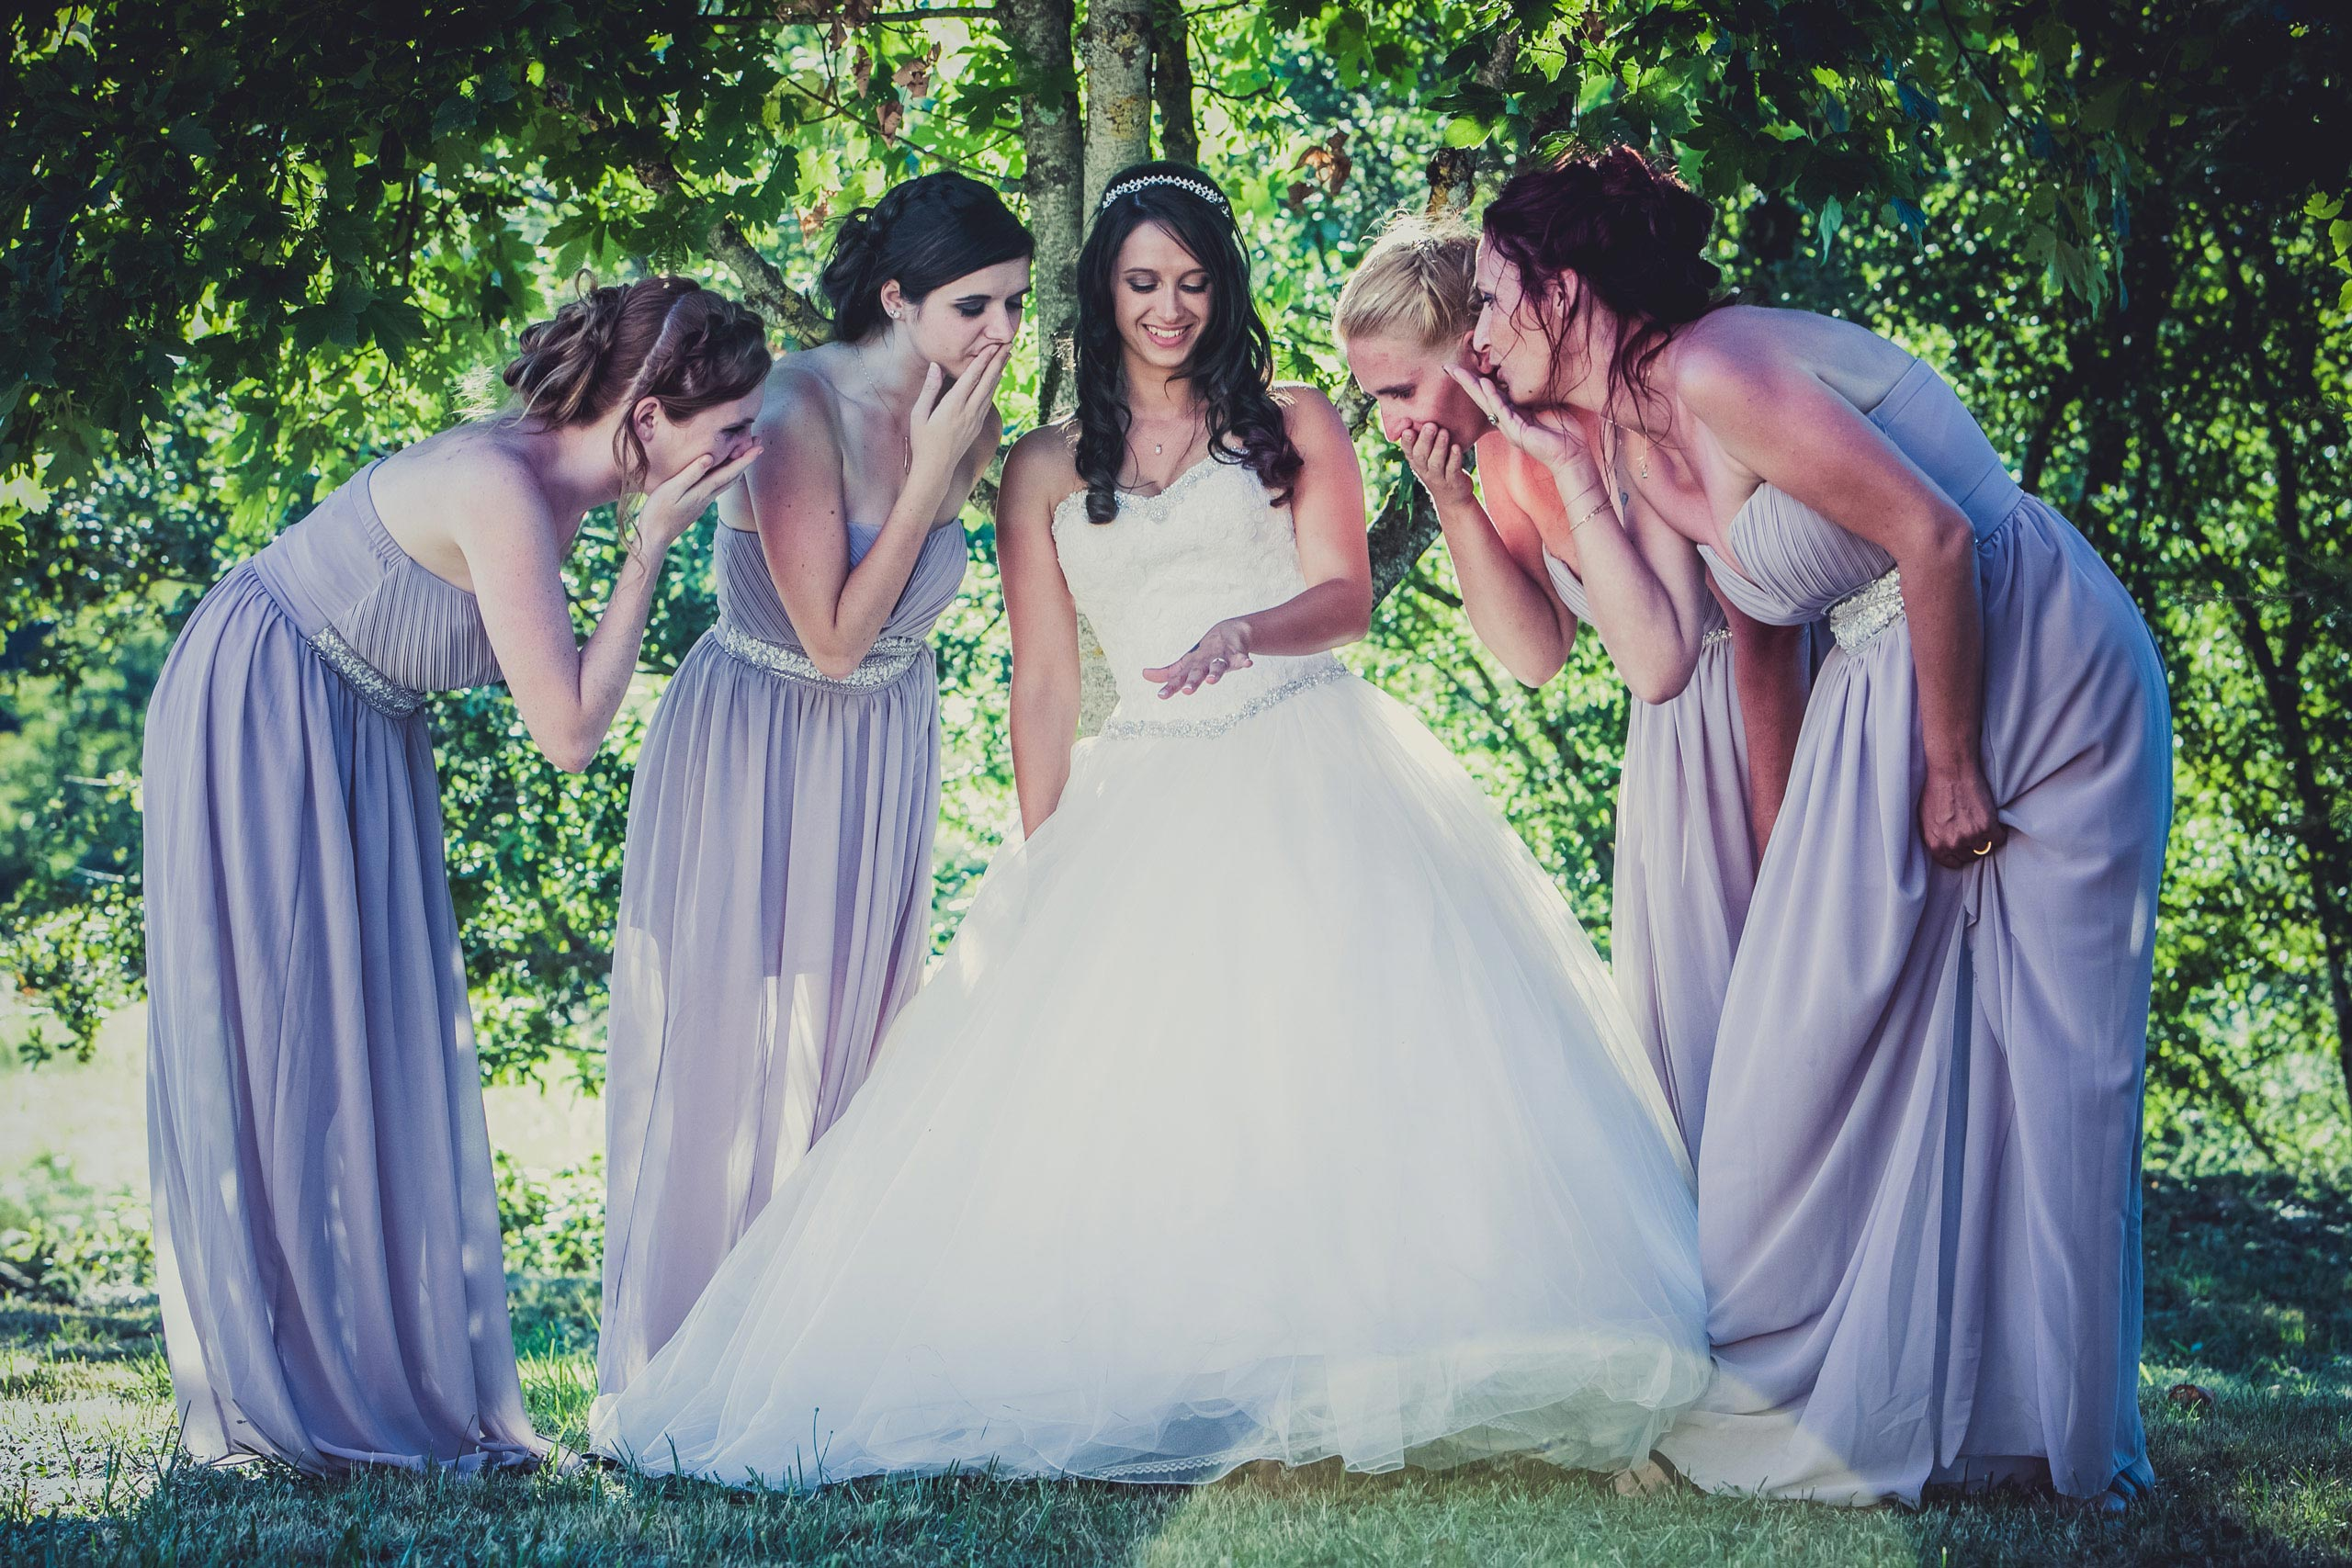 Video Mariage Photo Herault Aveyron Garonne Tarn Toulouse